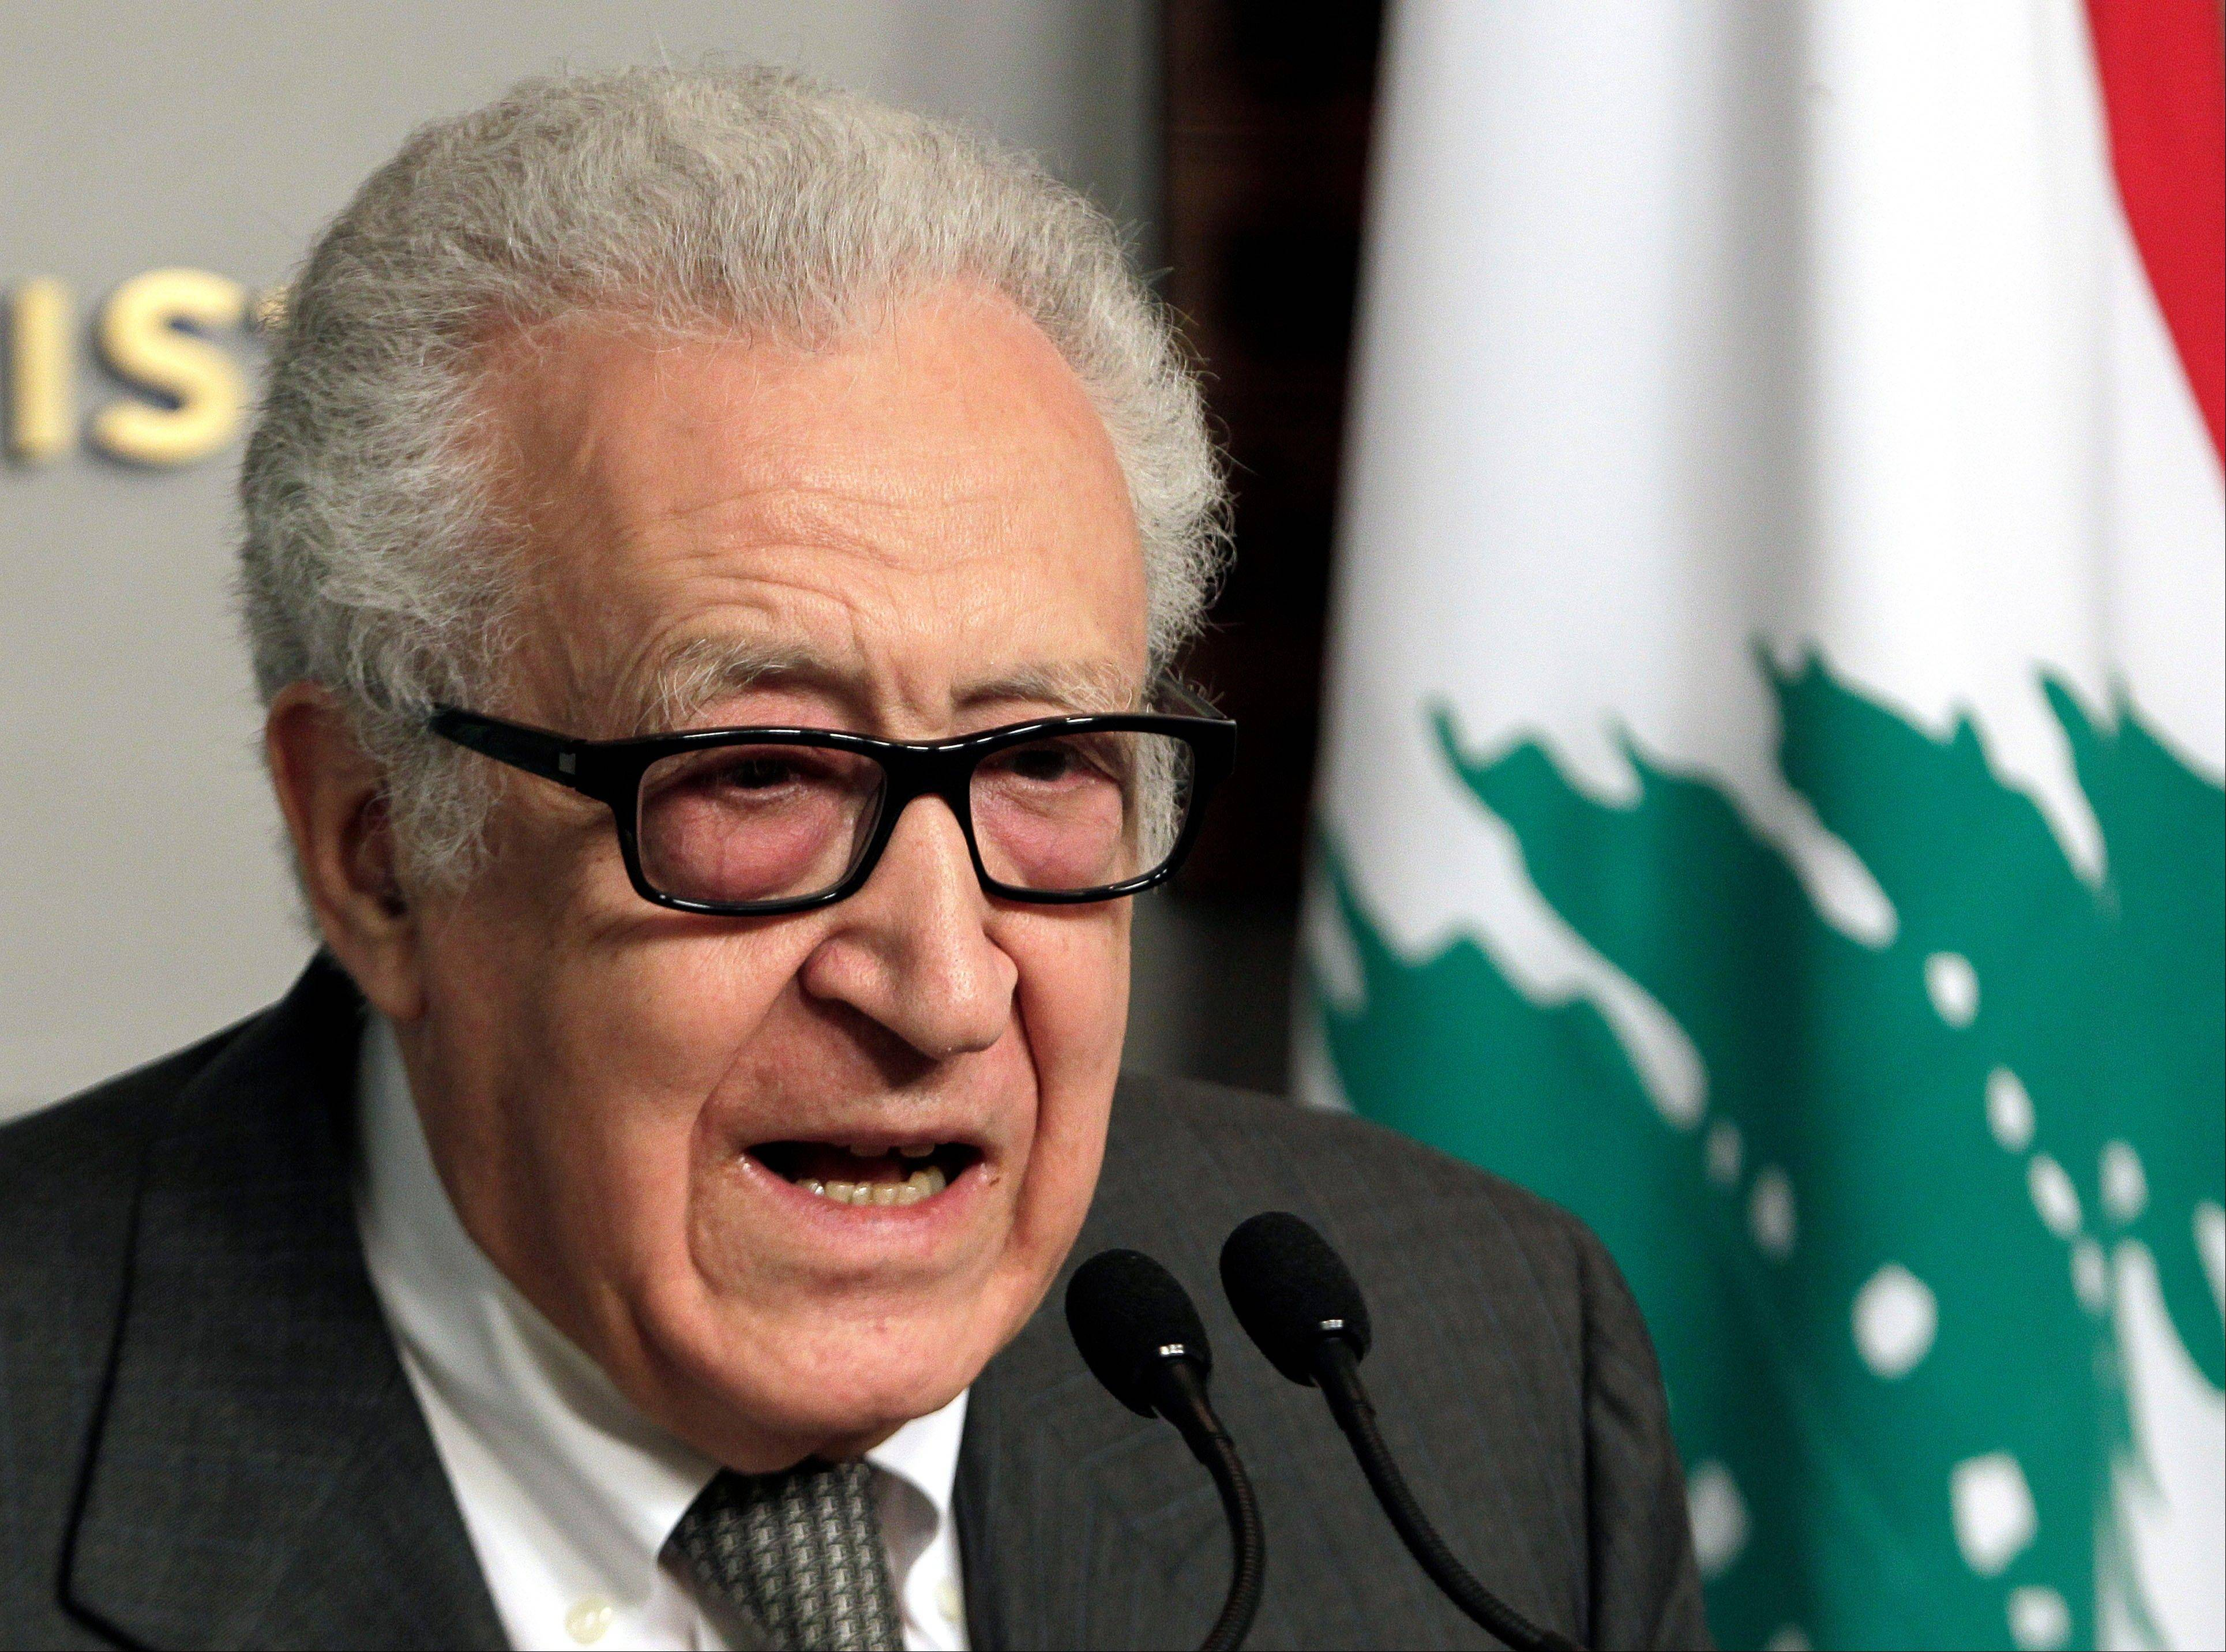 U.N.-Arab League envoy for Syria, Lakhdar Brahimi, speaks during a press conference after his meeting with Lebanese Prime Minister Najib Mikati, at the government house, in Beirut, Lebanon, Friday, Nov. 1, 2013. Brahimi warned on Friday in Damascus that there can be no peace talks without the opposition while making yet another plea for both sides in the civil war to come to the negotiating table in Geneva later this month. (AP Photo/Bilal Hussein)